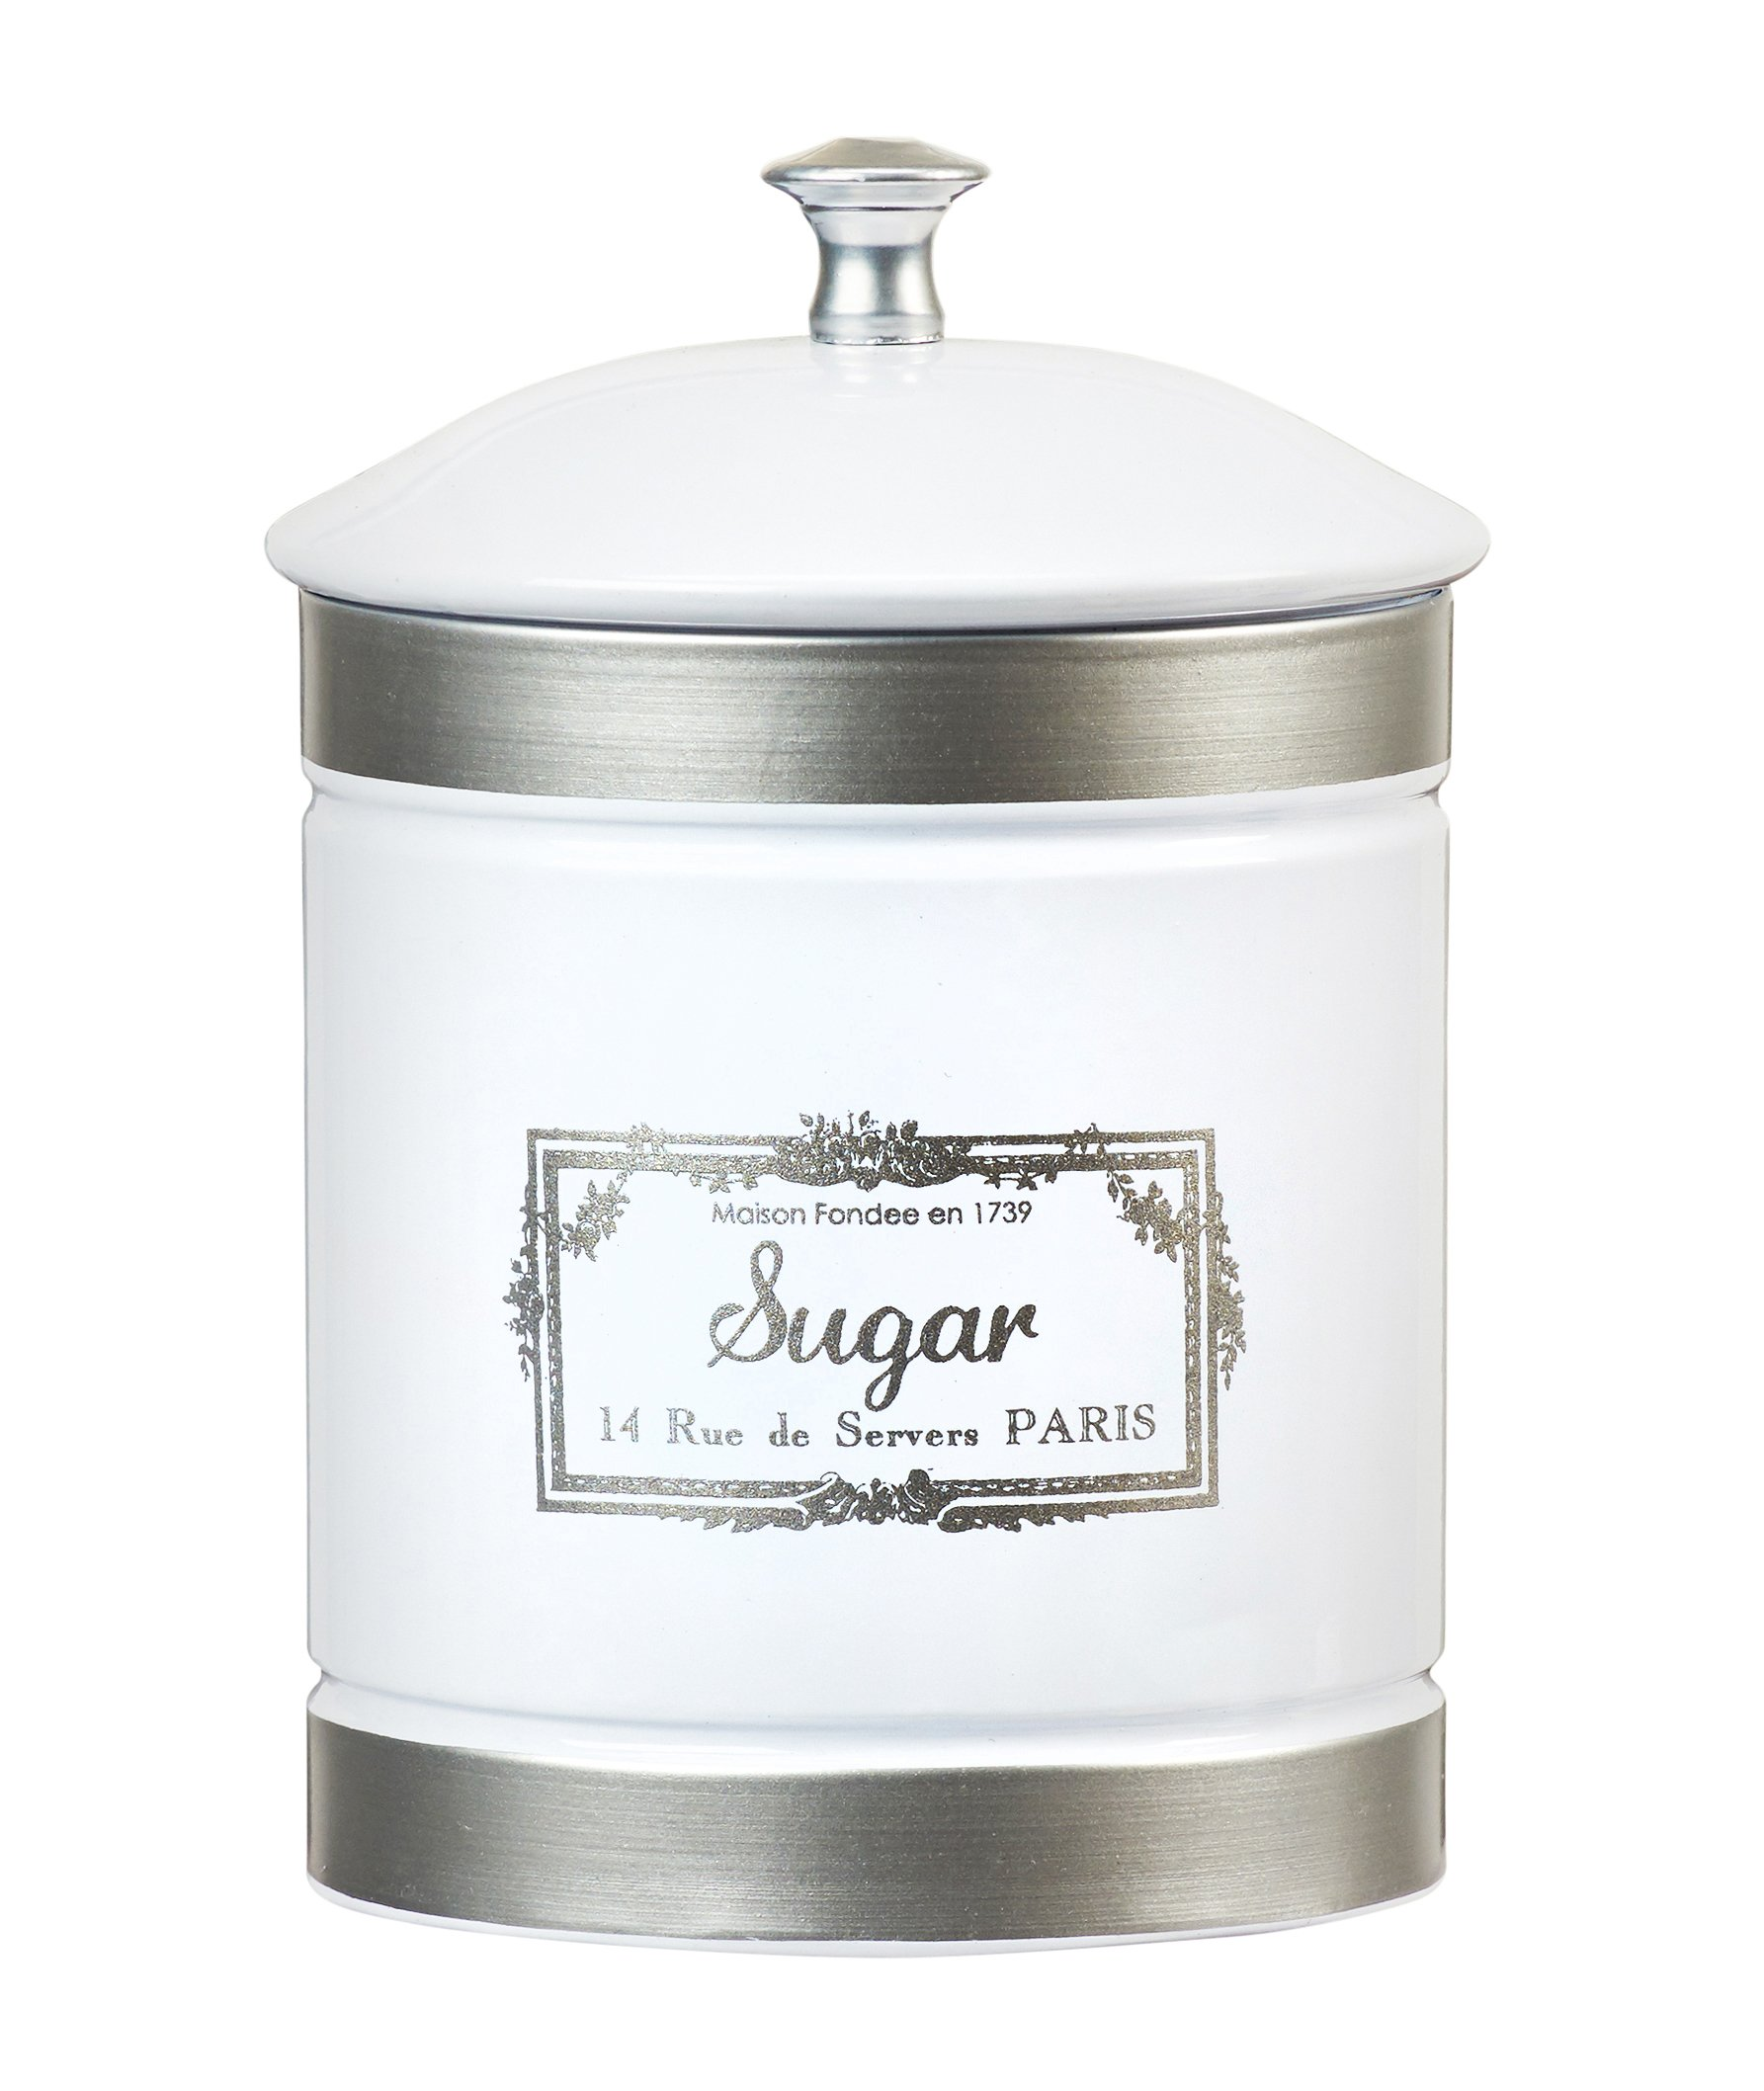 Amici Home, A5GS037R, Country Farmhouse Collection Sugar Metal Storage Canister, Push Top Lid, Food Safe, 36 Ounces